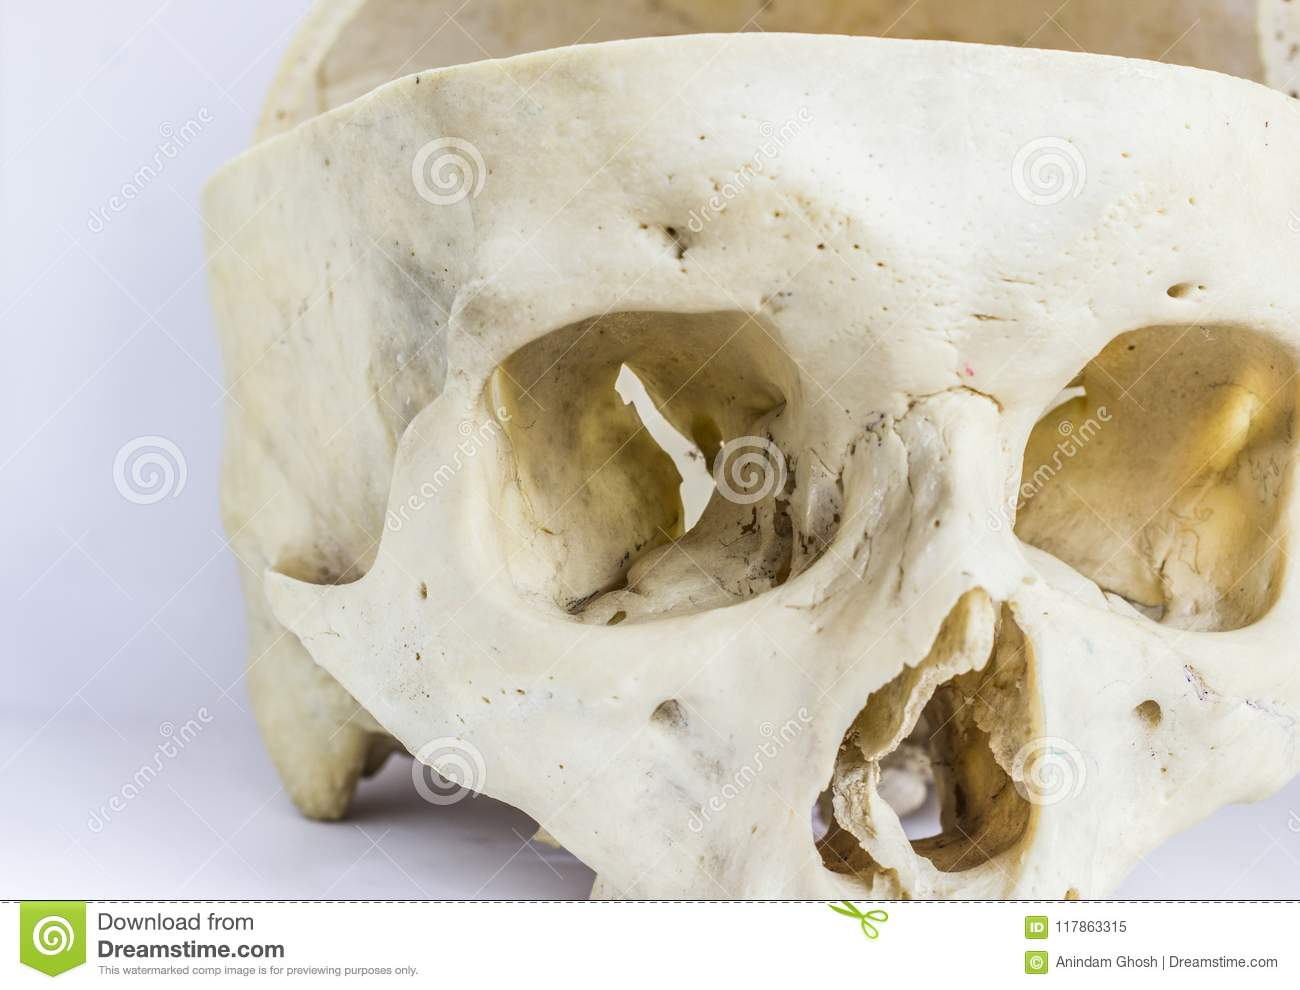 Close Up Macro View Of Human Skull Bone Showing The Anatomy Of